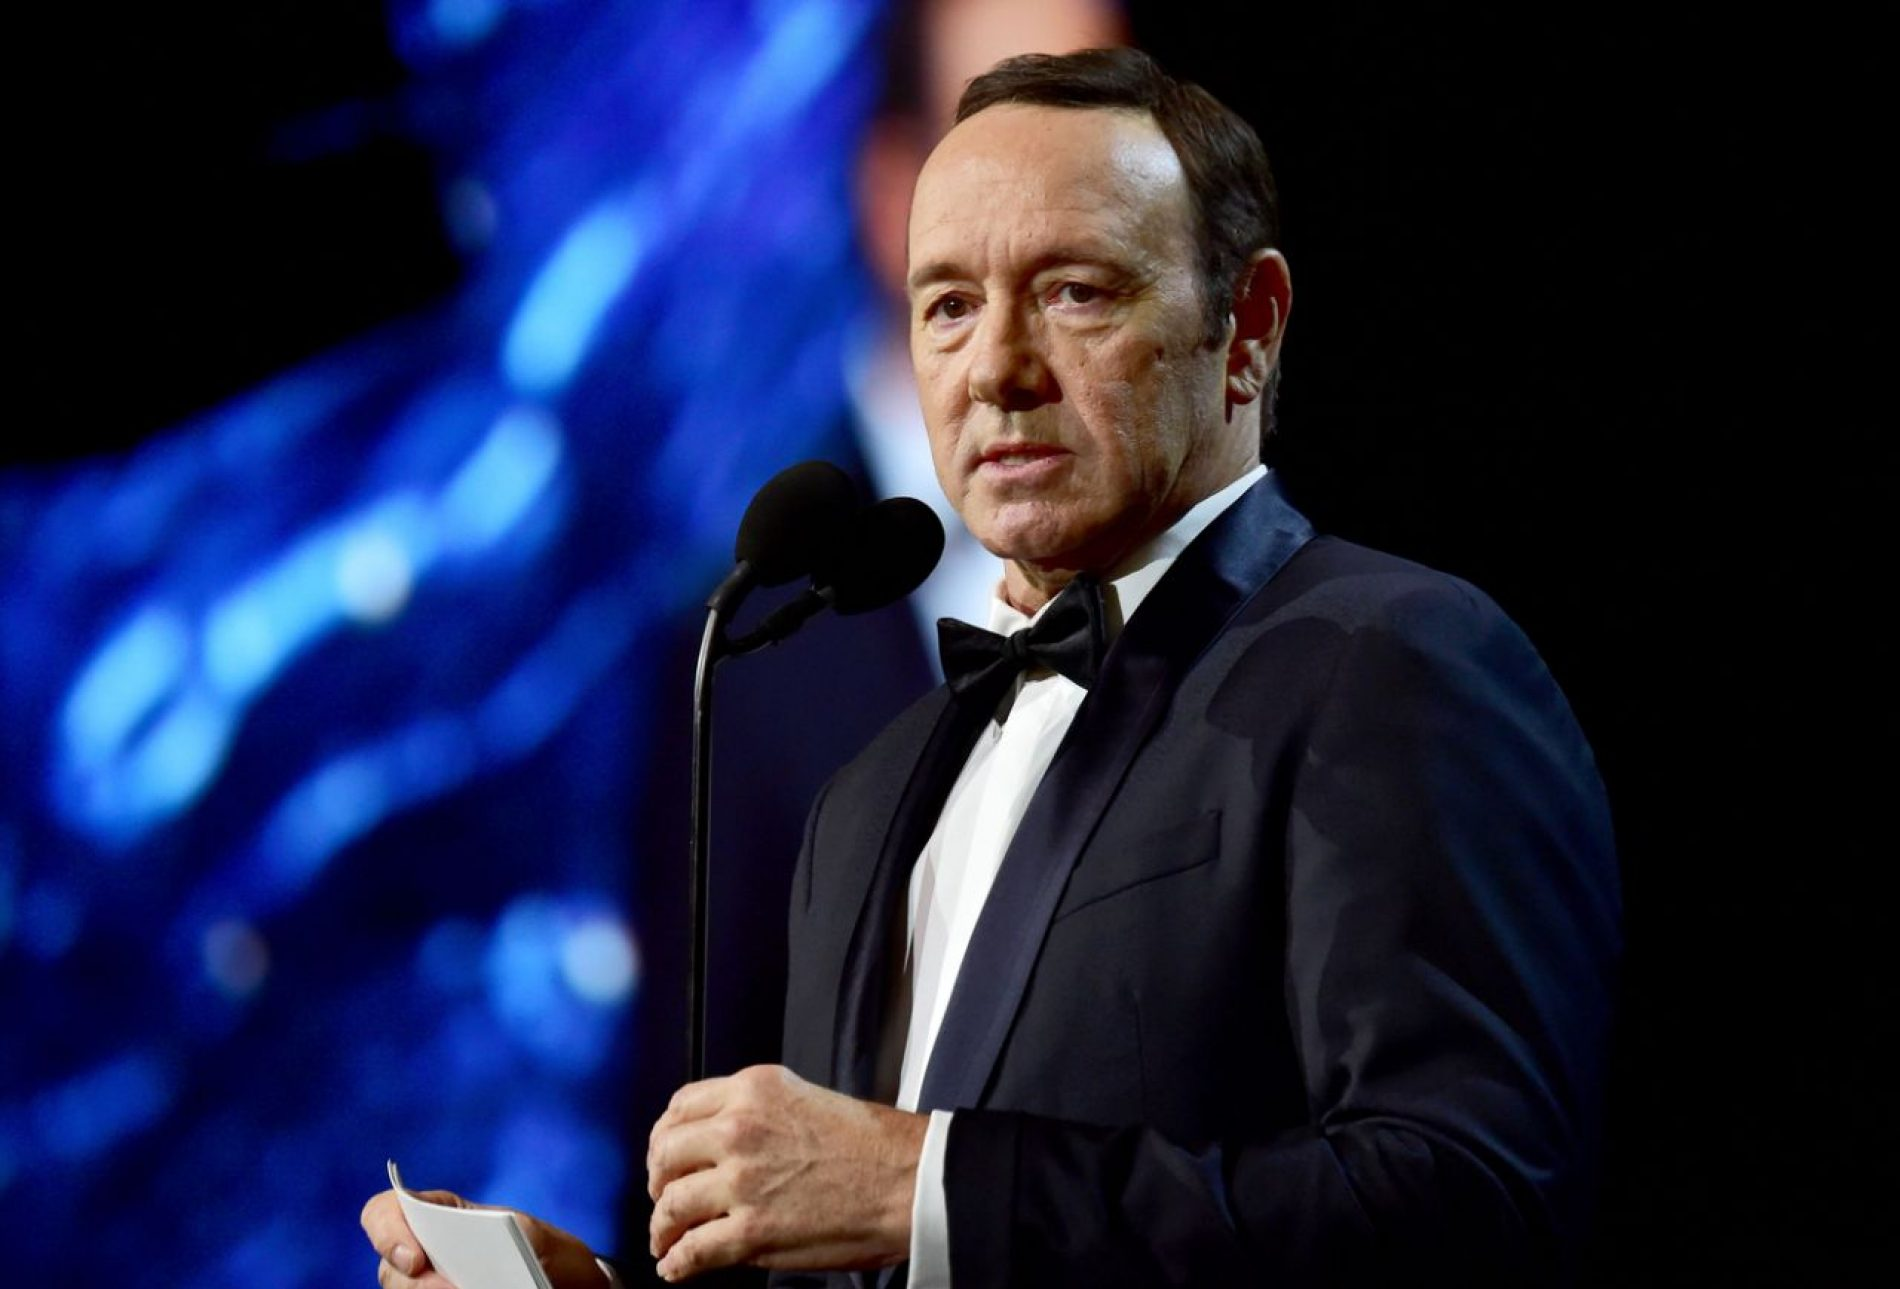 """The Accuser Never Said 'Stop. I Don't Give Consent.'"" Kevin Spacey Pushes Back on Sex Assault Allegation in Court"